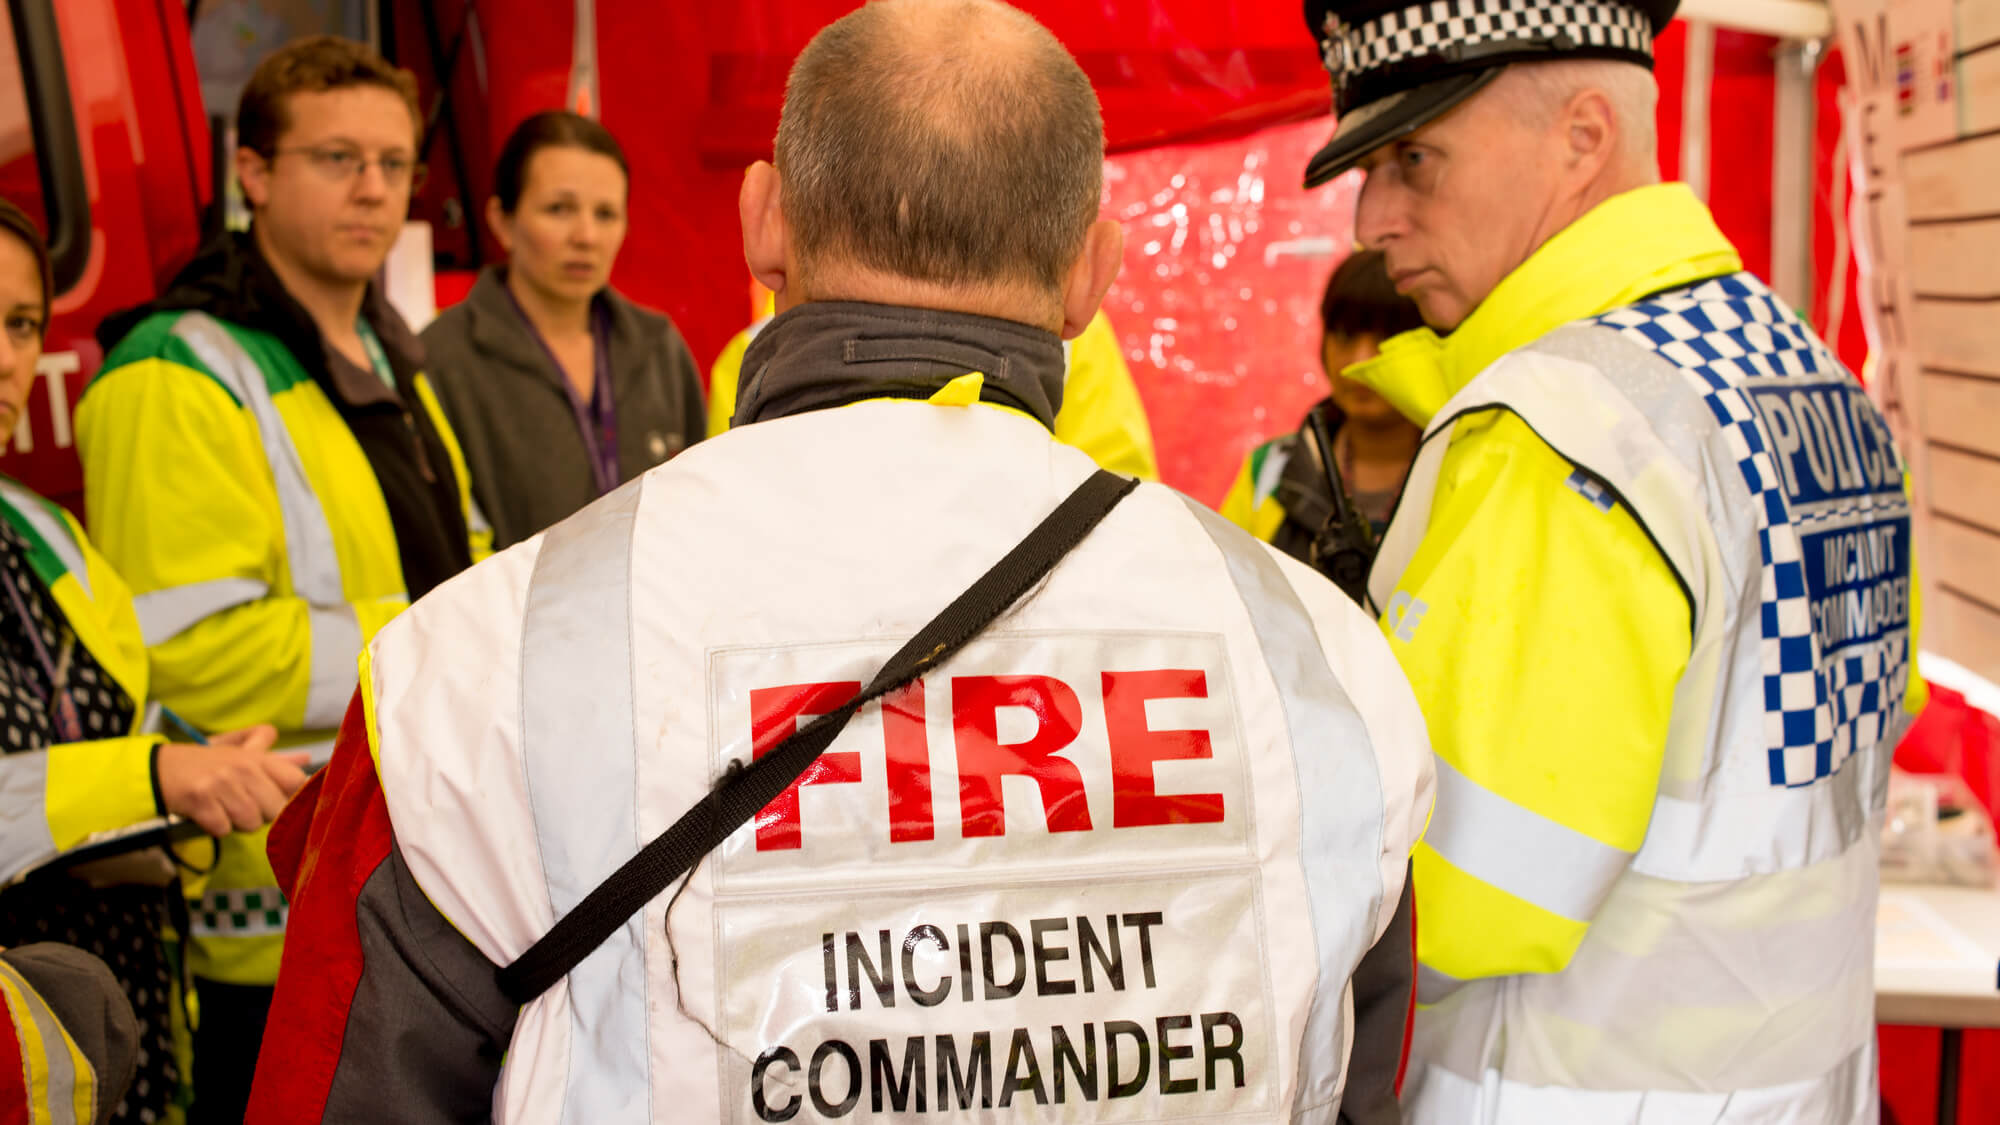 Fire Safety while living in student halls